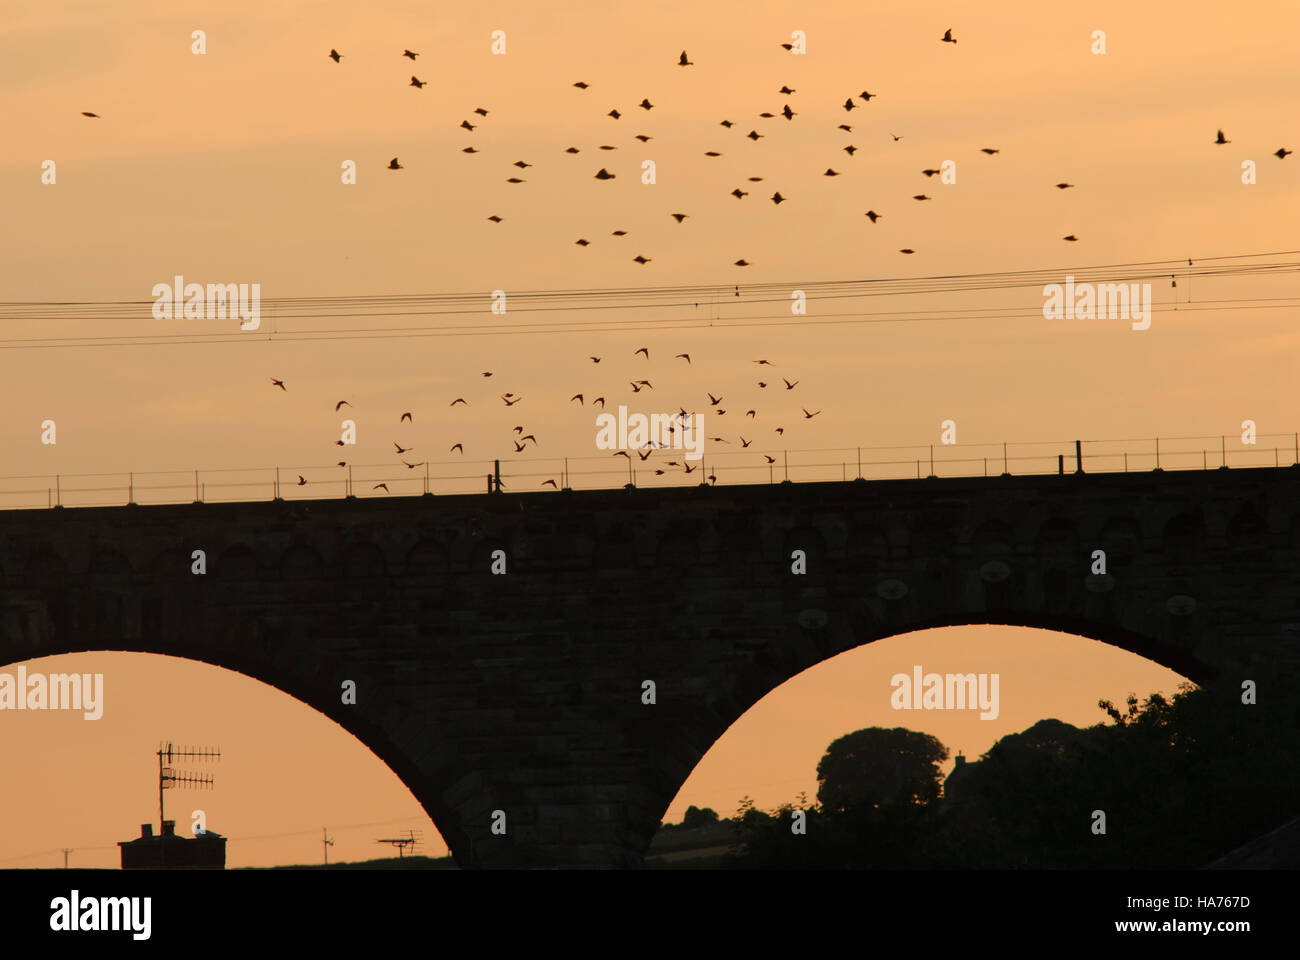 Rail viaduct at sunset with flocks of pigeons and gulls in silhouette, Berwick-upon-Tweed, Northumberland, England - Stock Image